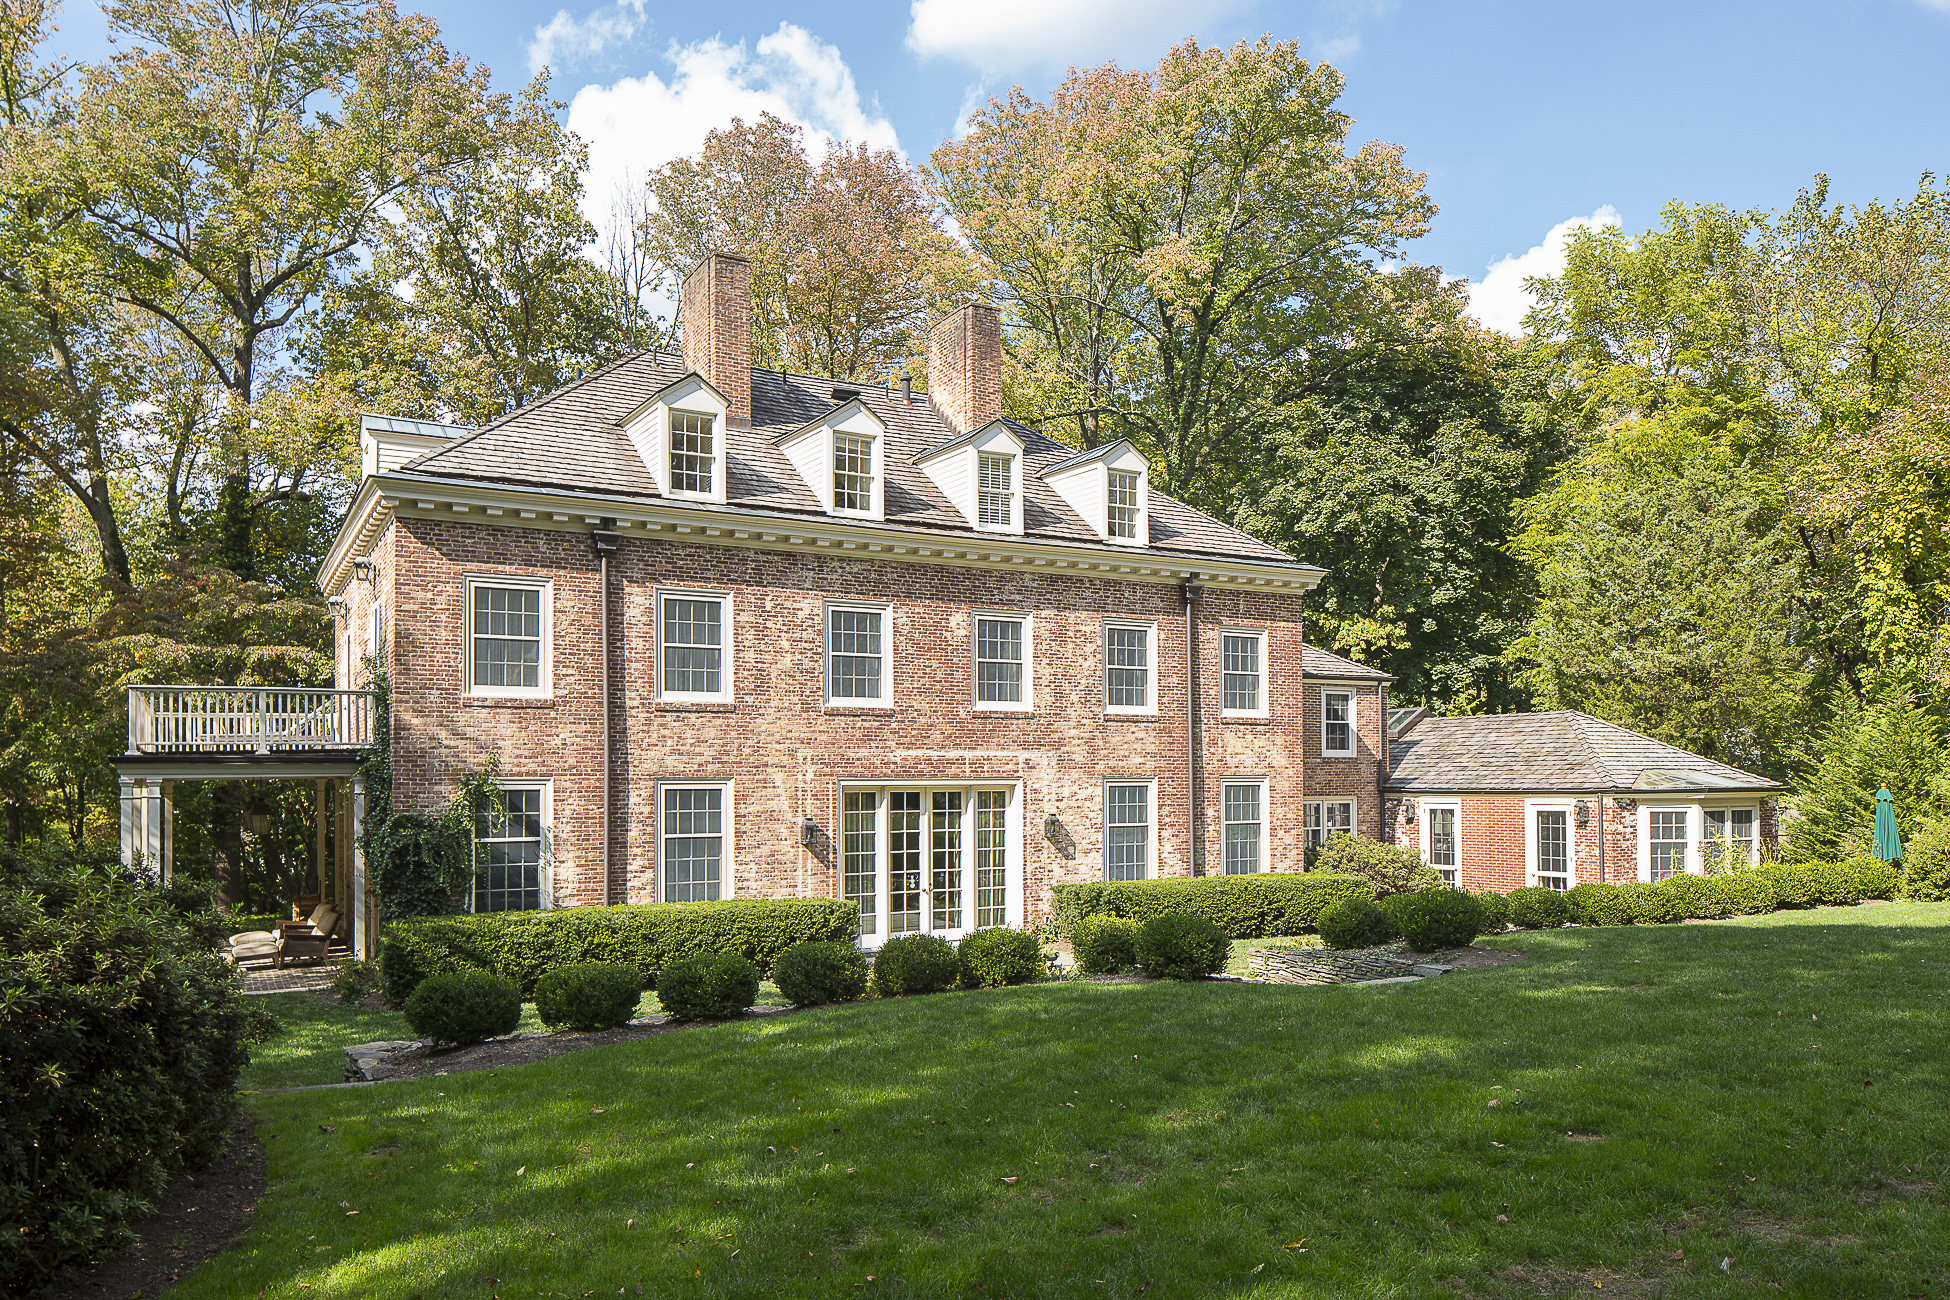 Single Family Home for Sale at Truly Uncompromising 102 Lafayette Road Princeton, New Jersey 08540 United States